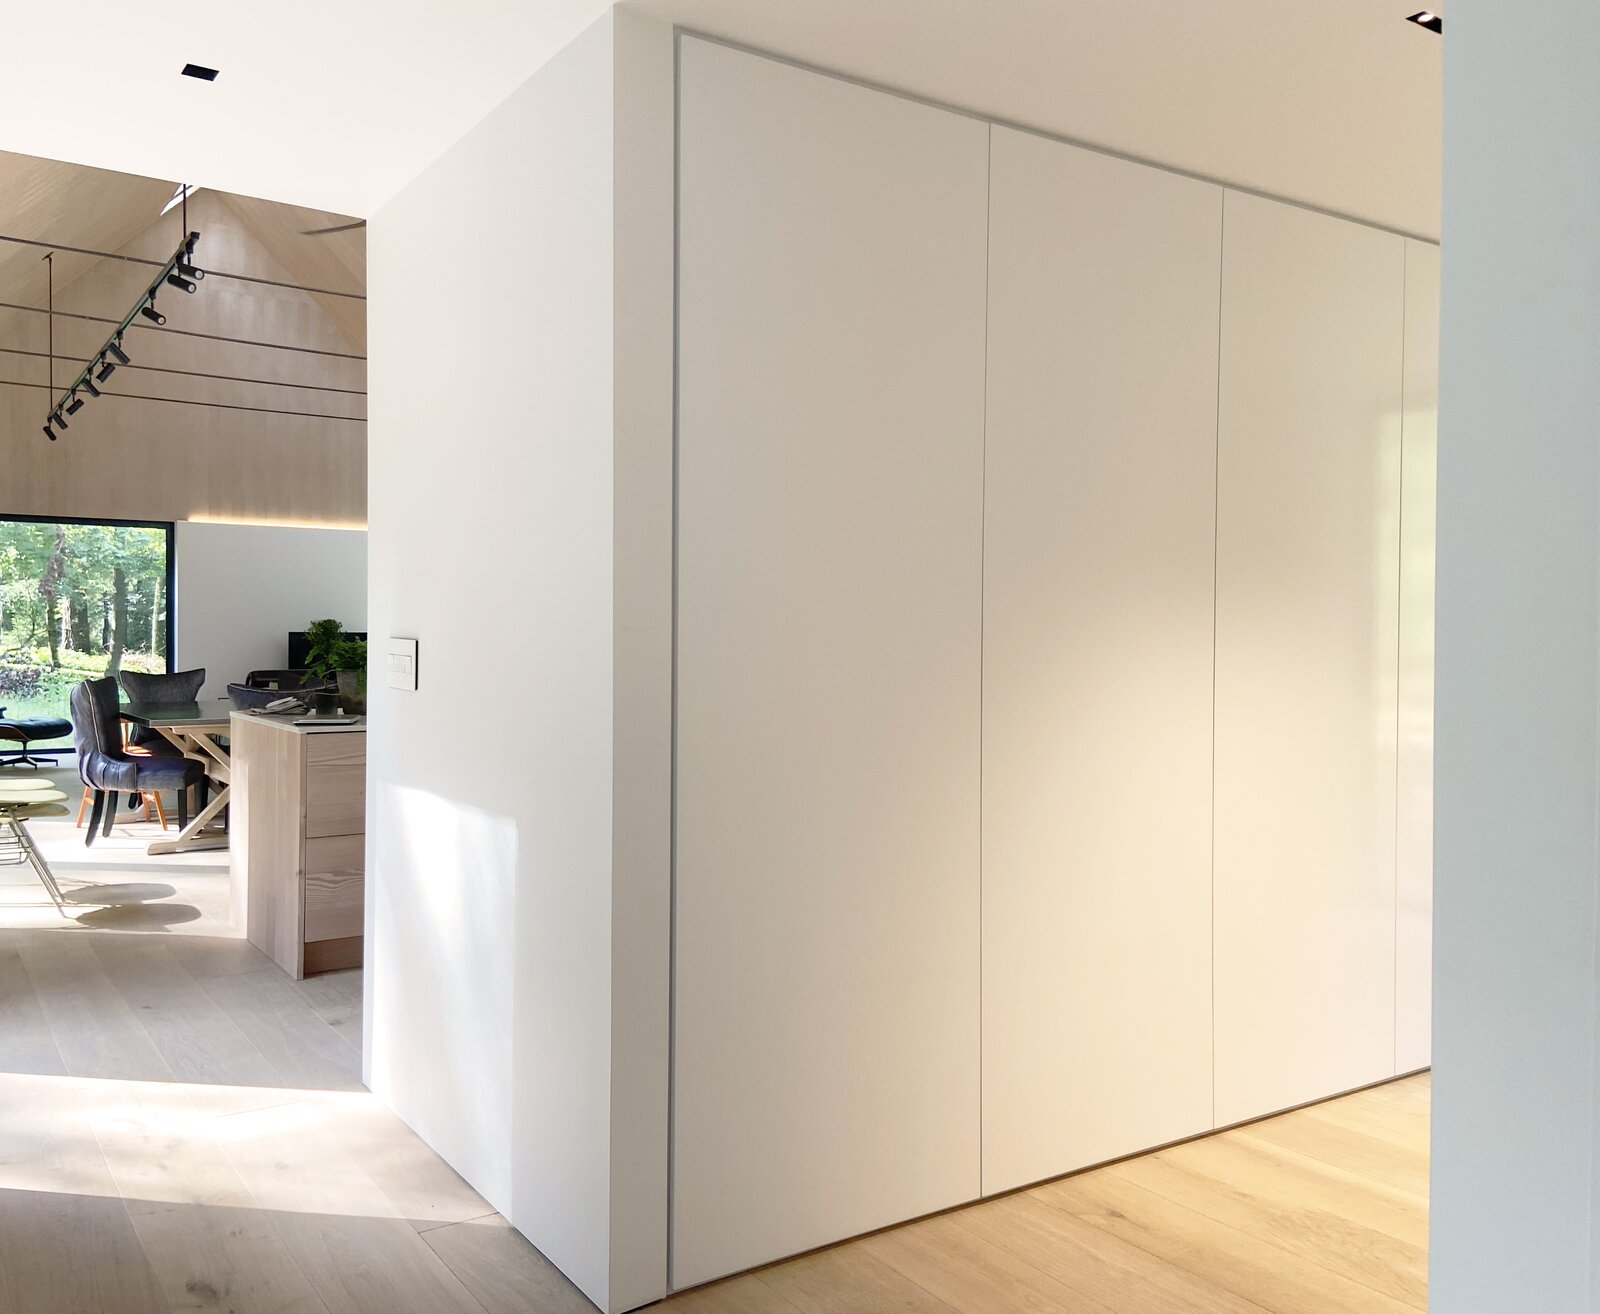 Storage Room, Cabinet Storage Type, and Closet Storage Type Pantry & Great Room entry  Cork Haven by Multitude Studio